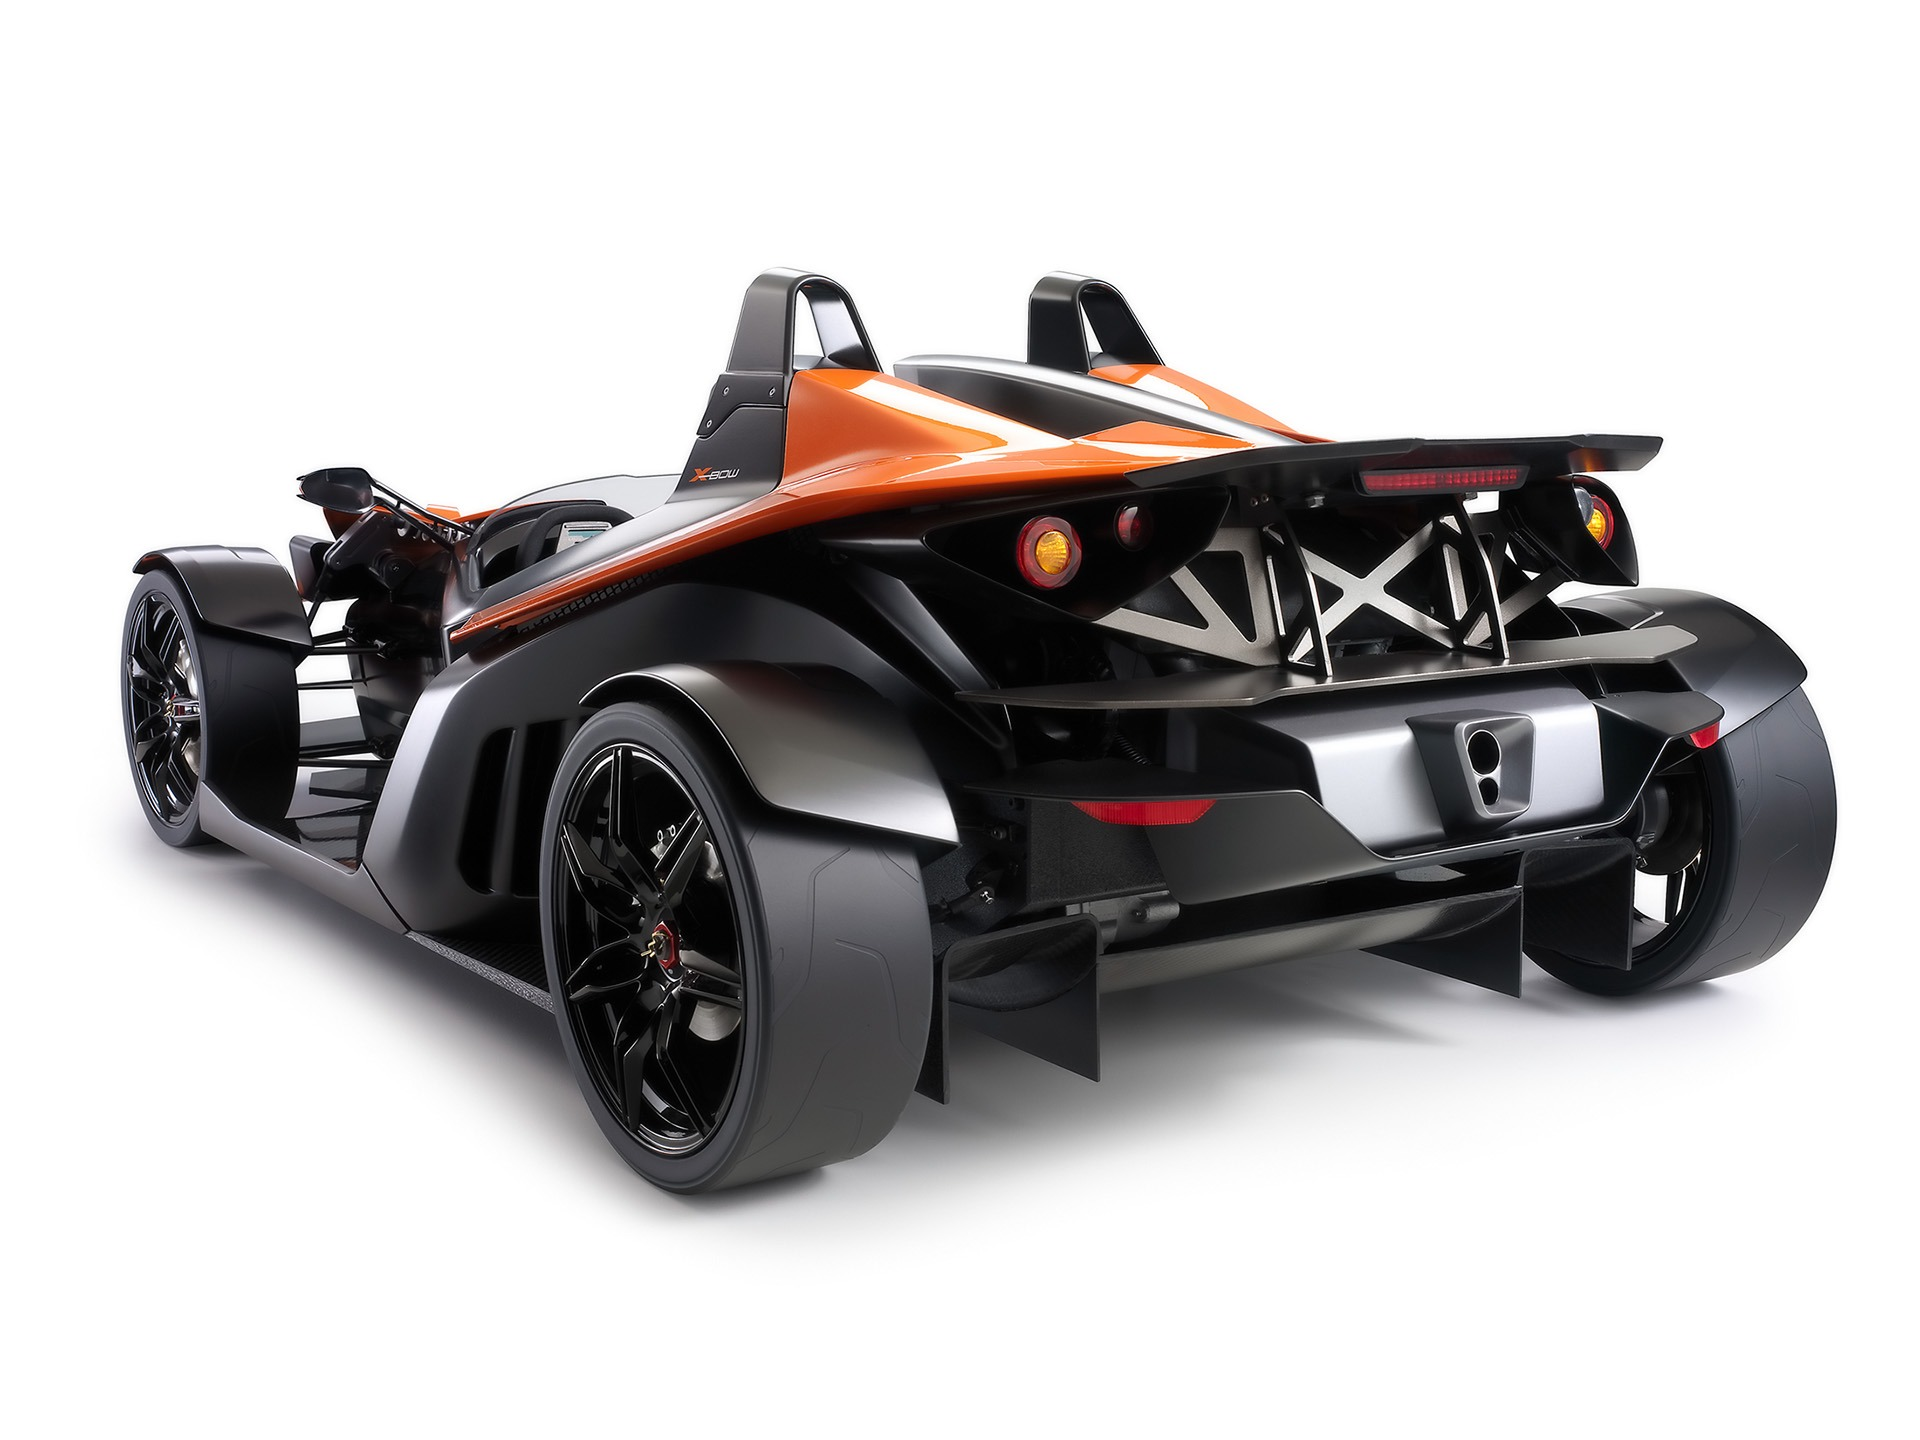 Ktm X Bow Rear Side View Wallpaper Concept Cars Wallpapers In Jpg